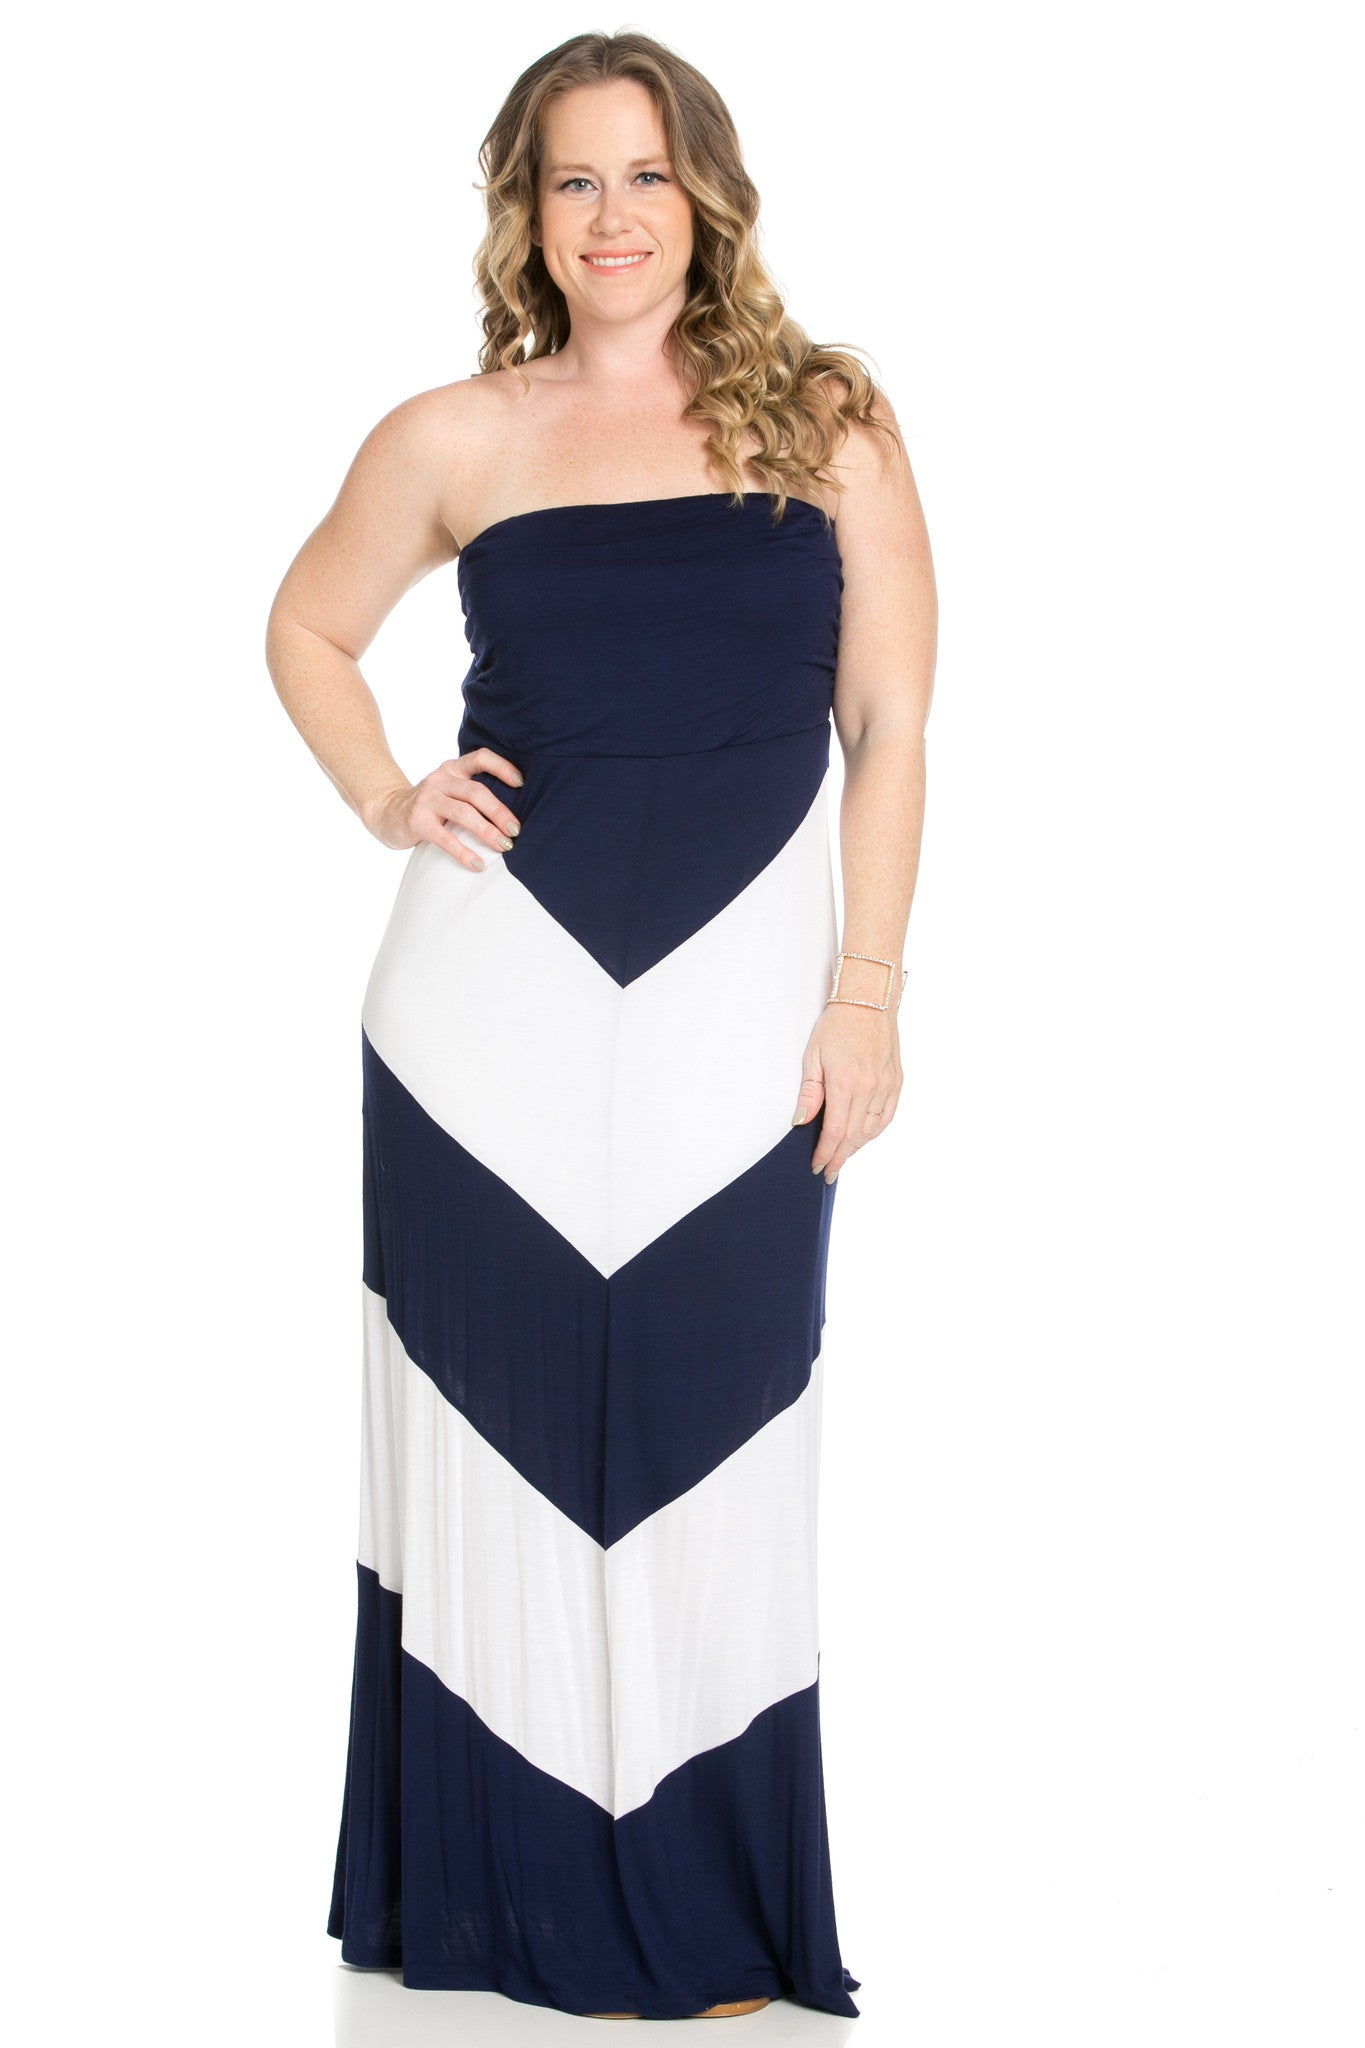 Strapless Long tube Dress Navy/White Cause You're Chevron - Dresses - My Yuccie - 5